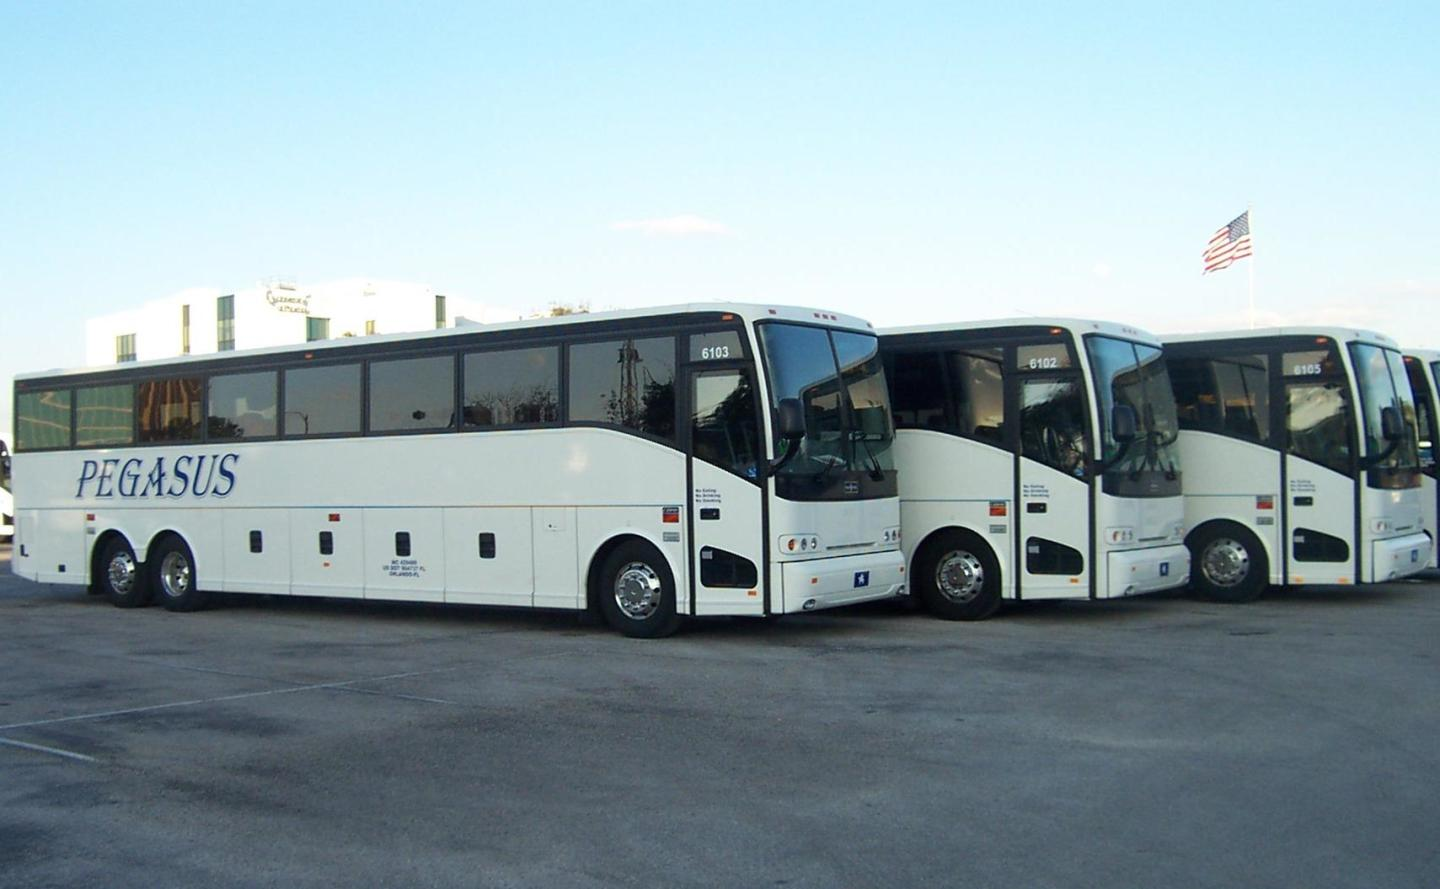 3 of the 25 motorcoach buses that form Pegasus Transportation's clean, reliable, and well-organized